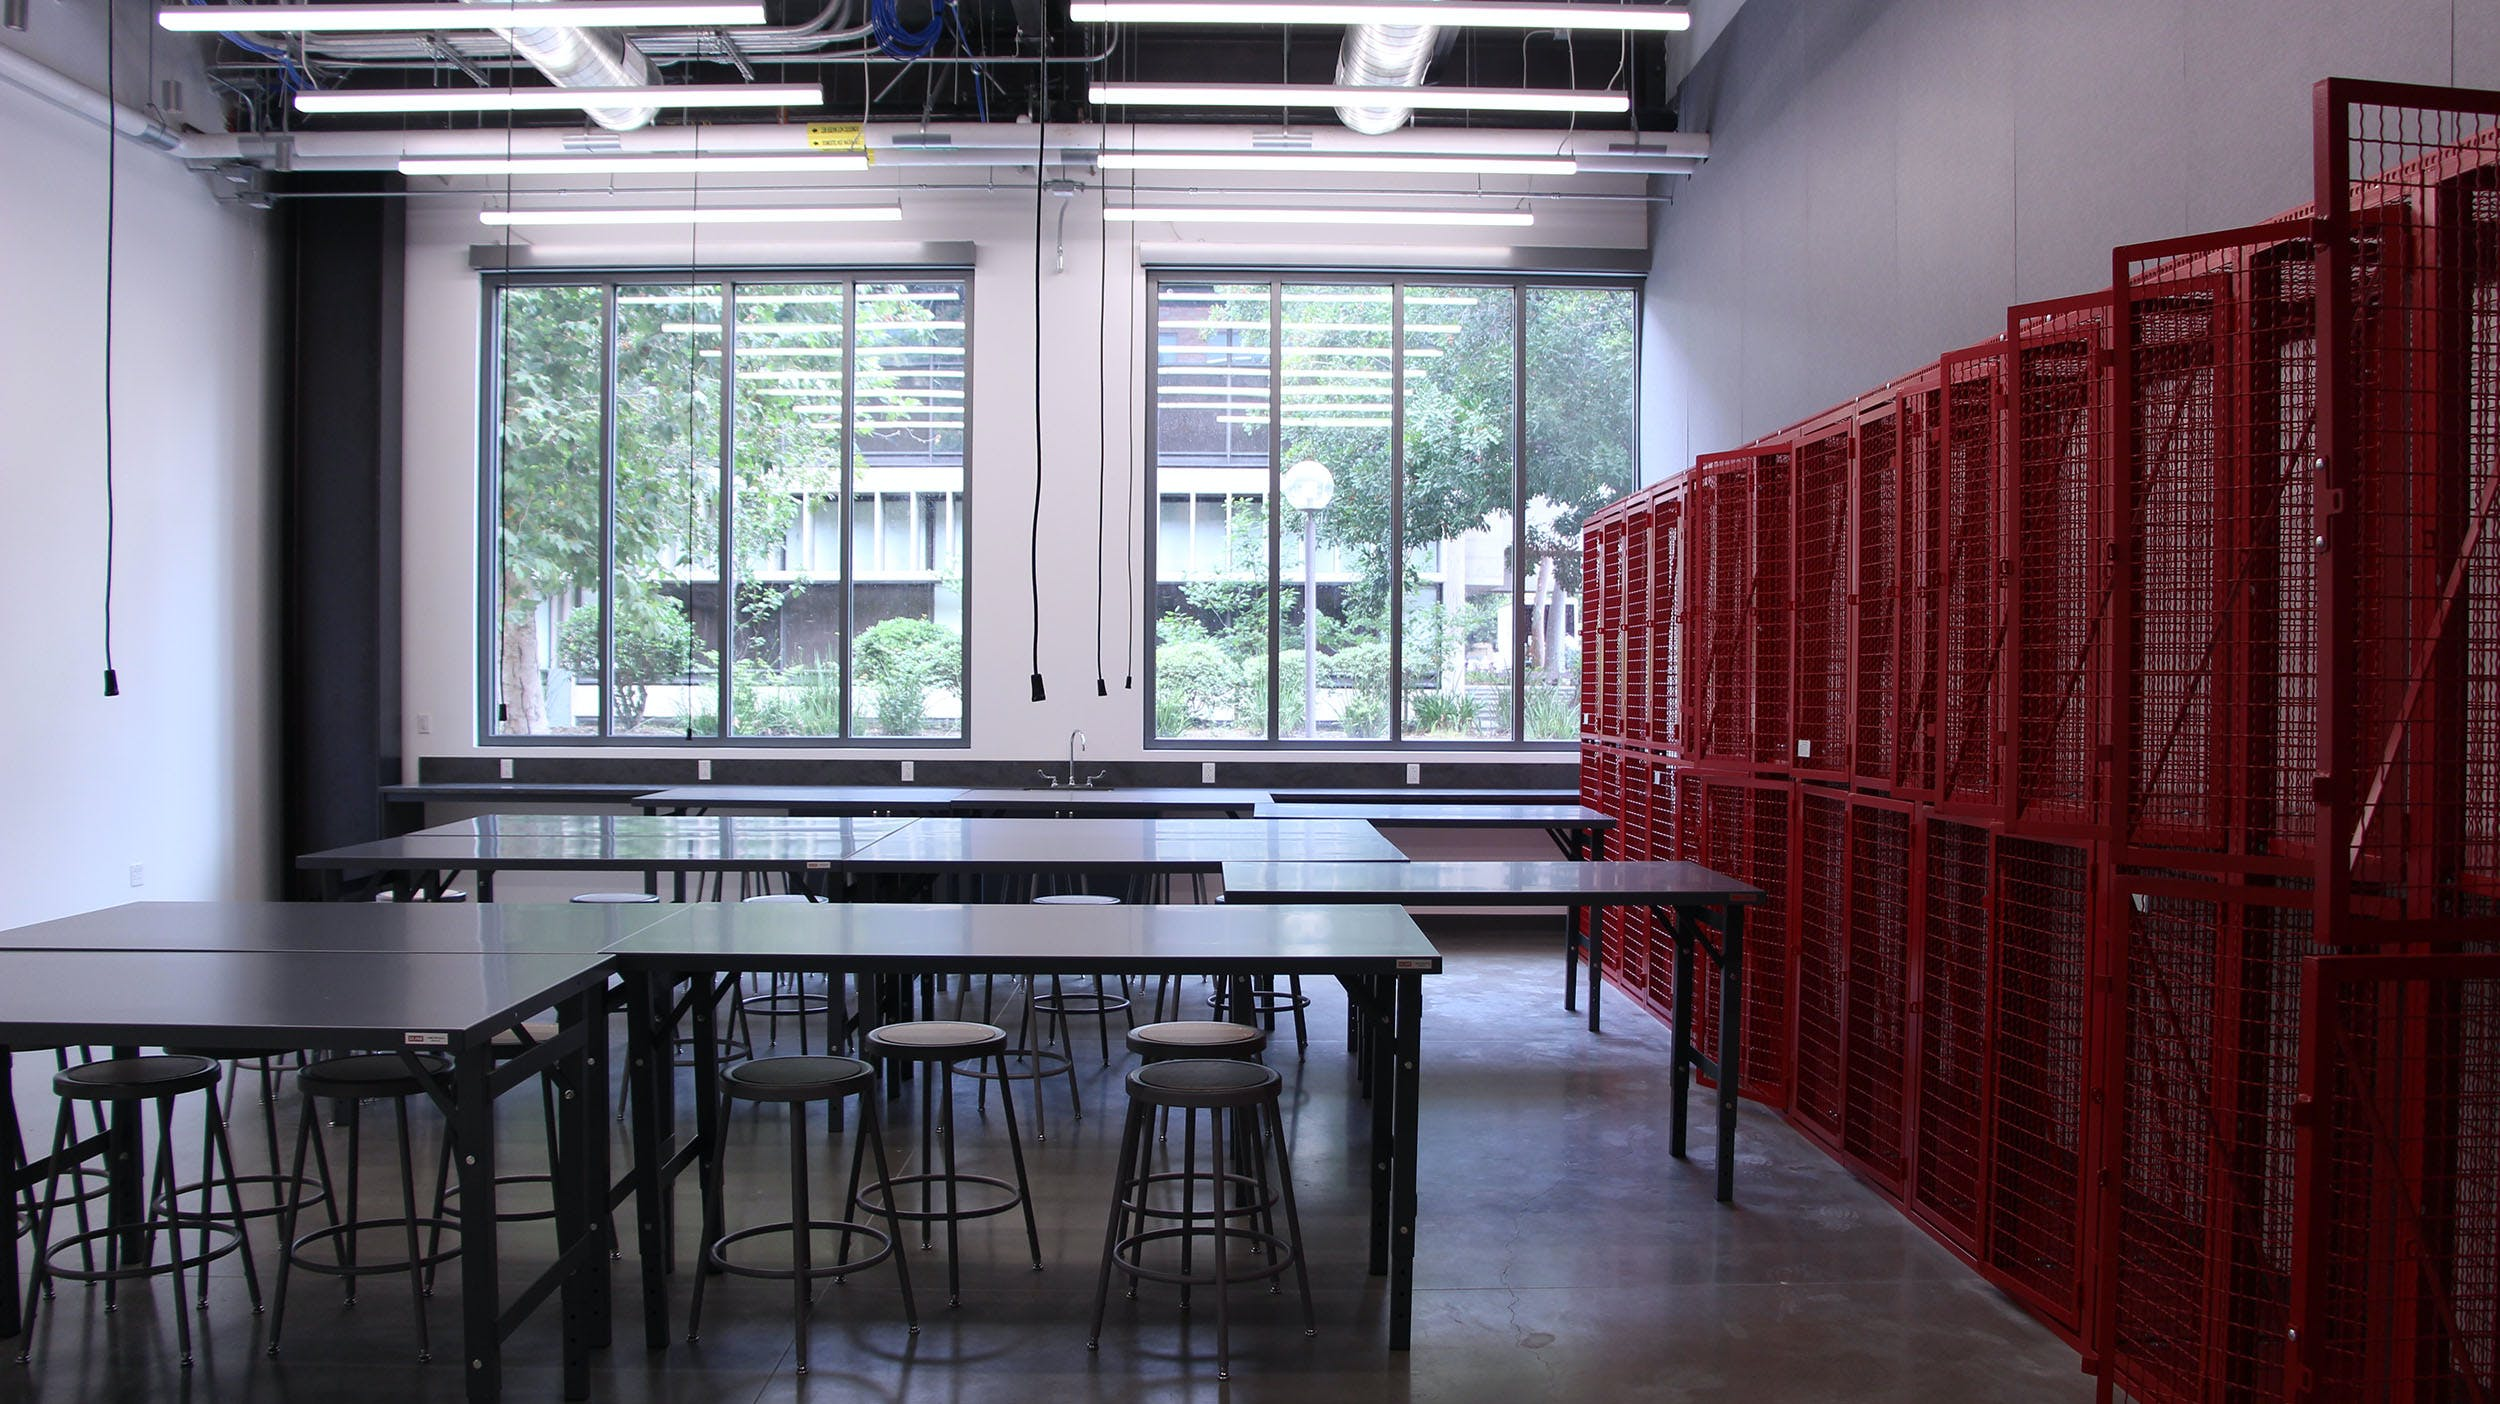 An empty classroom with long desks and red cage lockers